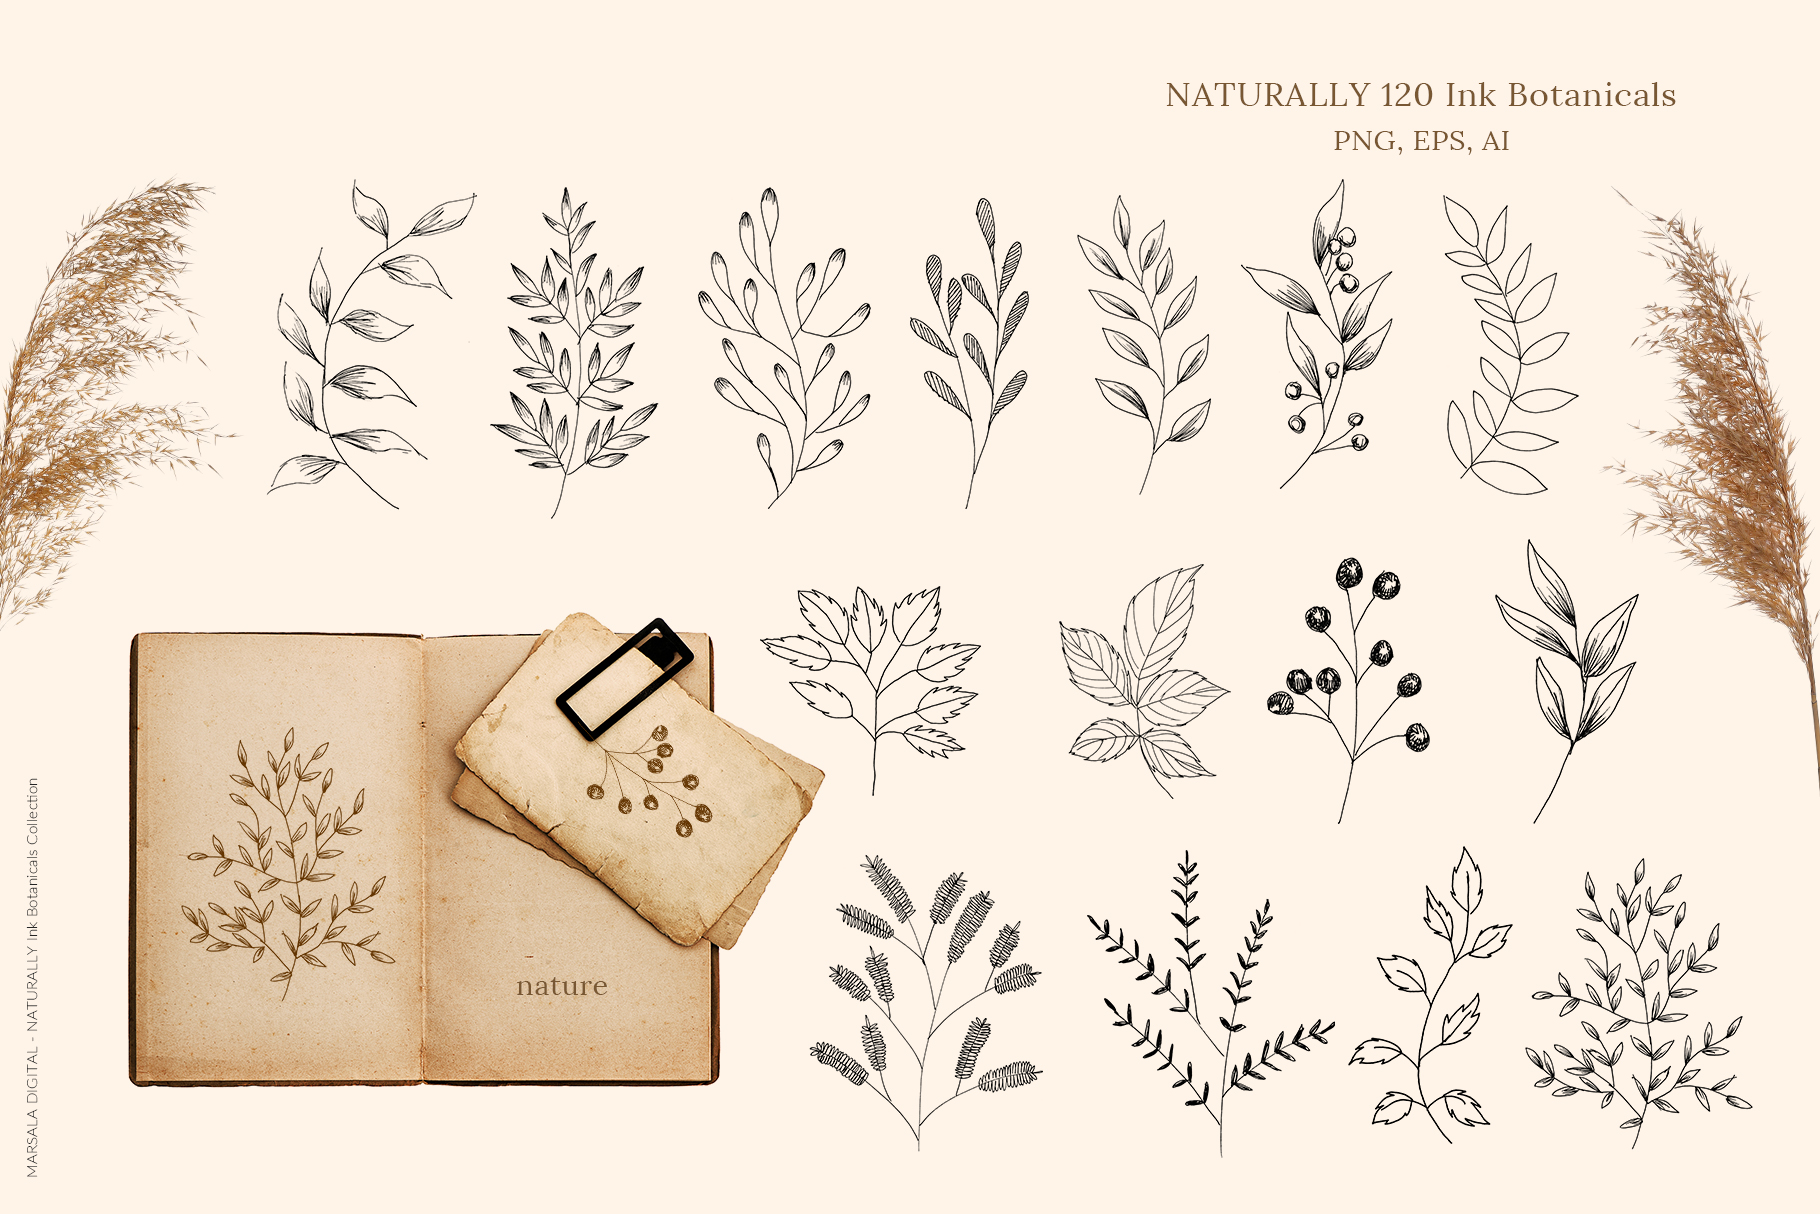 Ink Botanicals Vintage Wildflowers Ink Botanicals Vintage example image 6